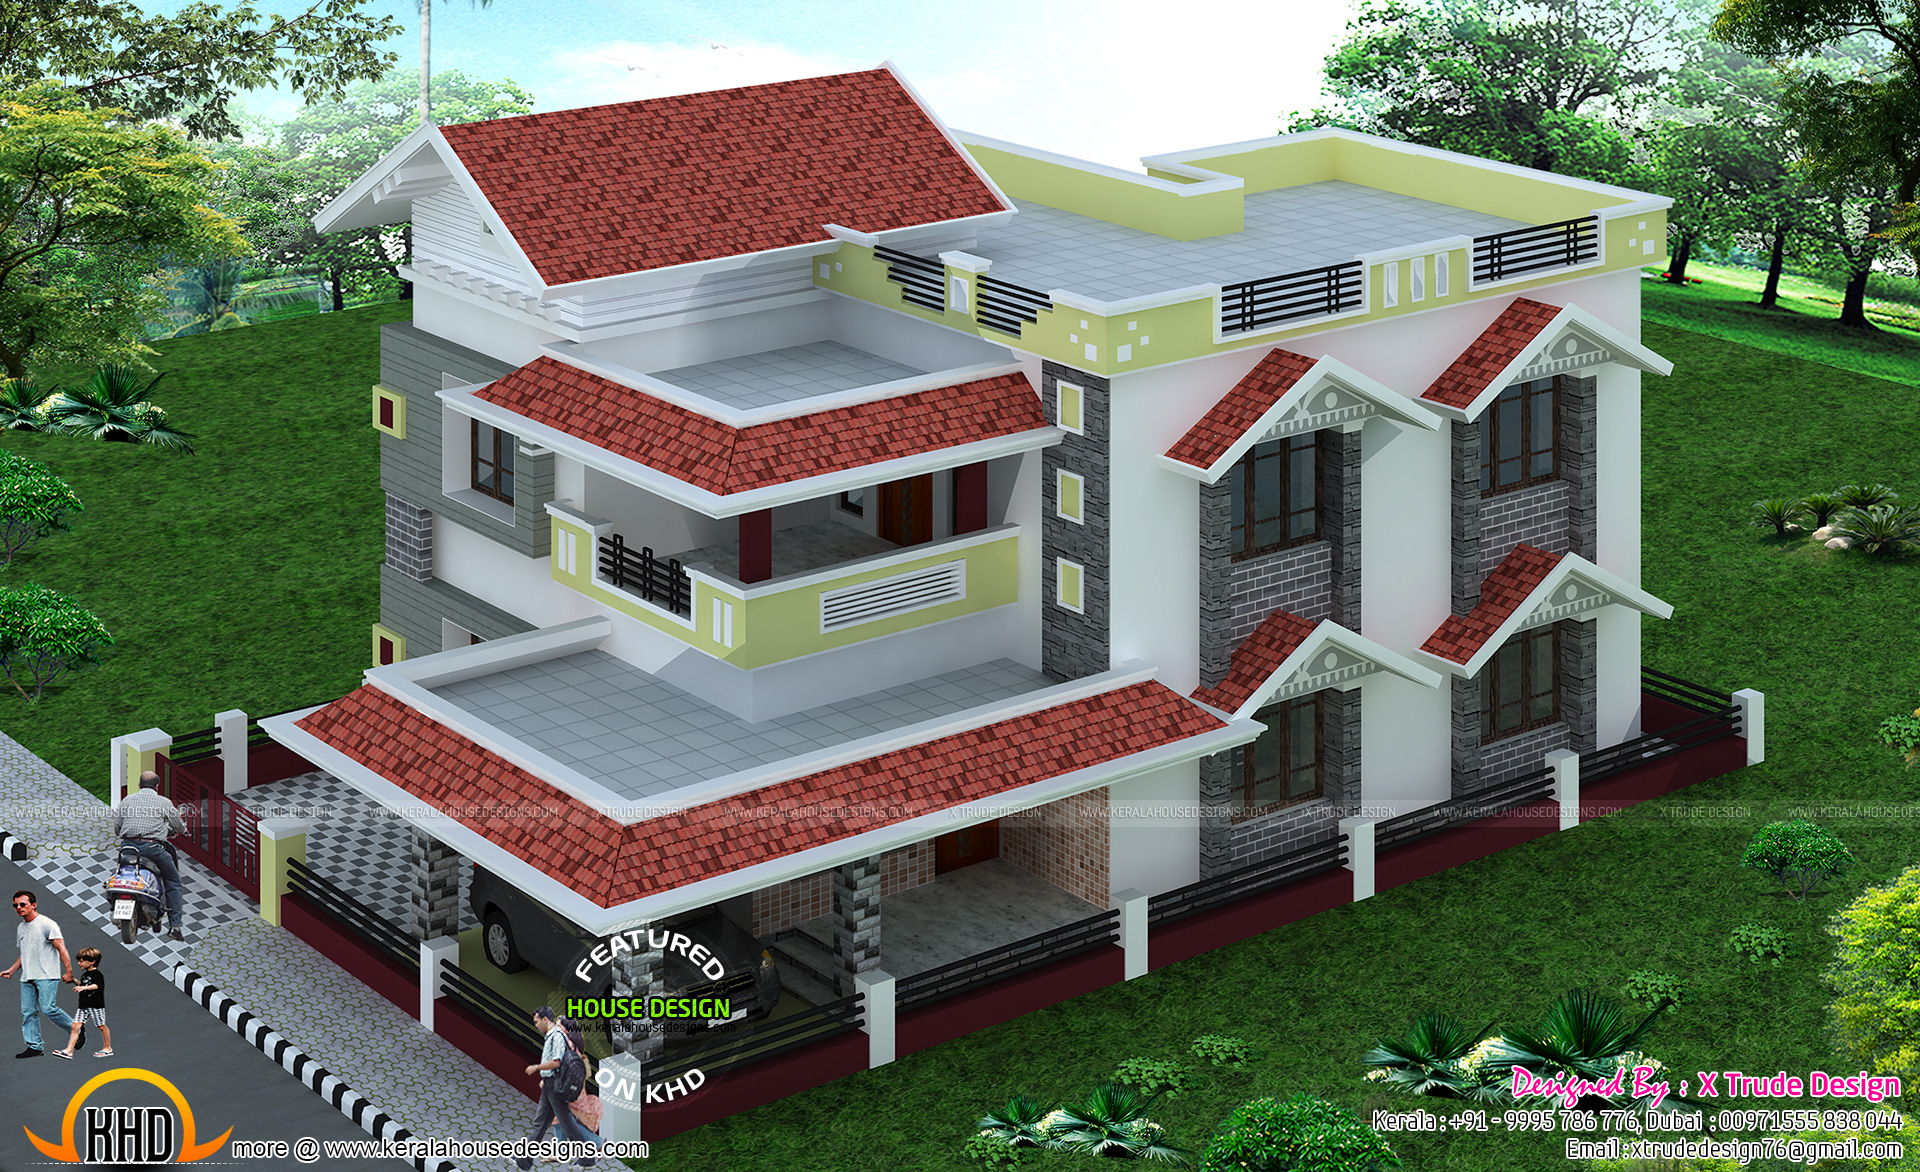 2581 sq ft house by x trude design kerala home design for Best house designs